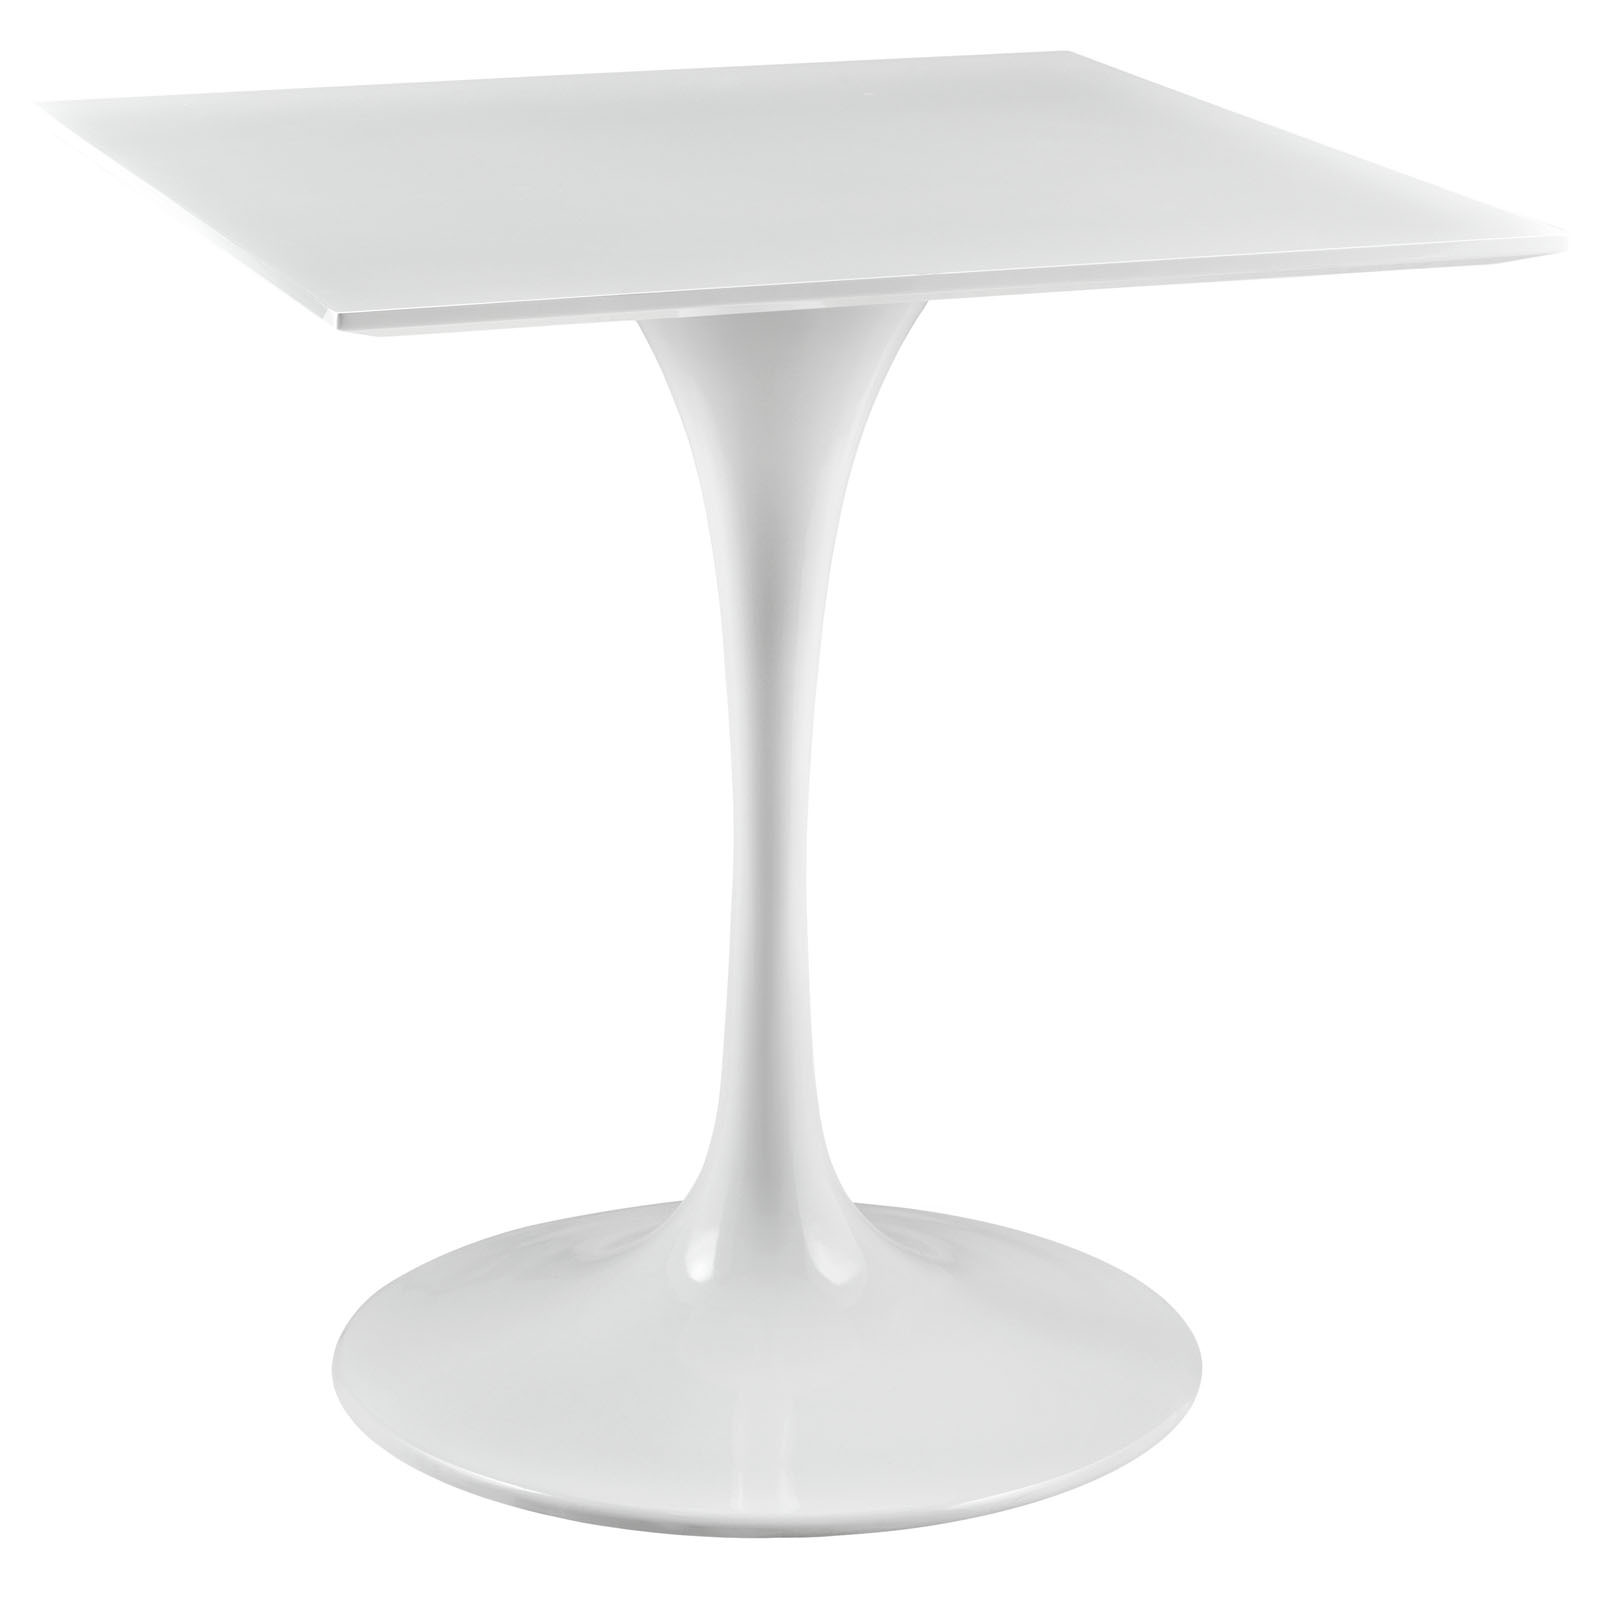 36 Tulip Table Saarinen Style Square Top Dining Table Comes In 24inch